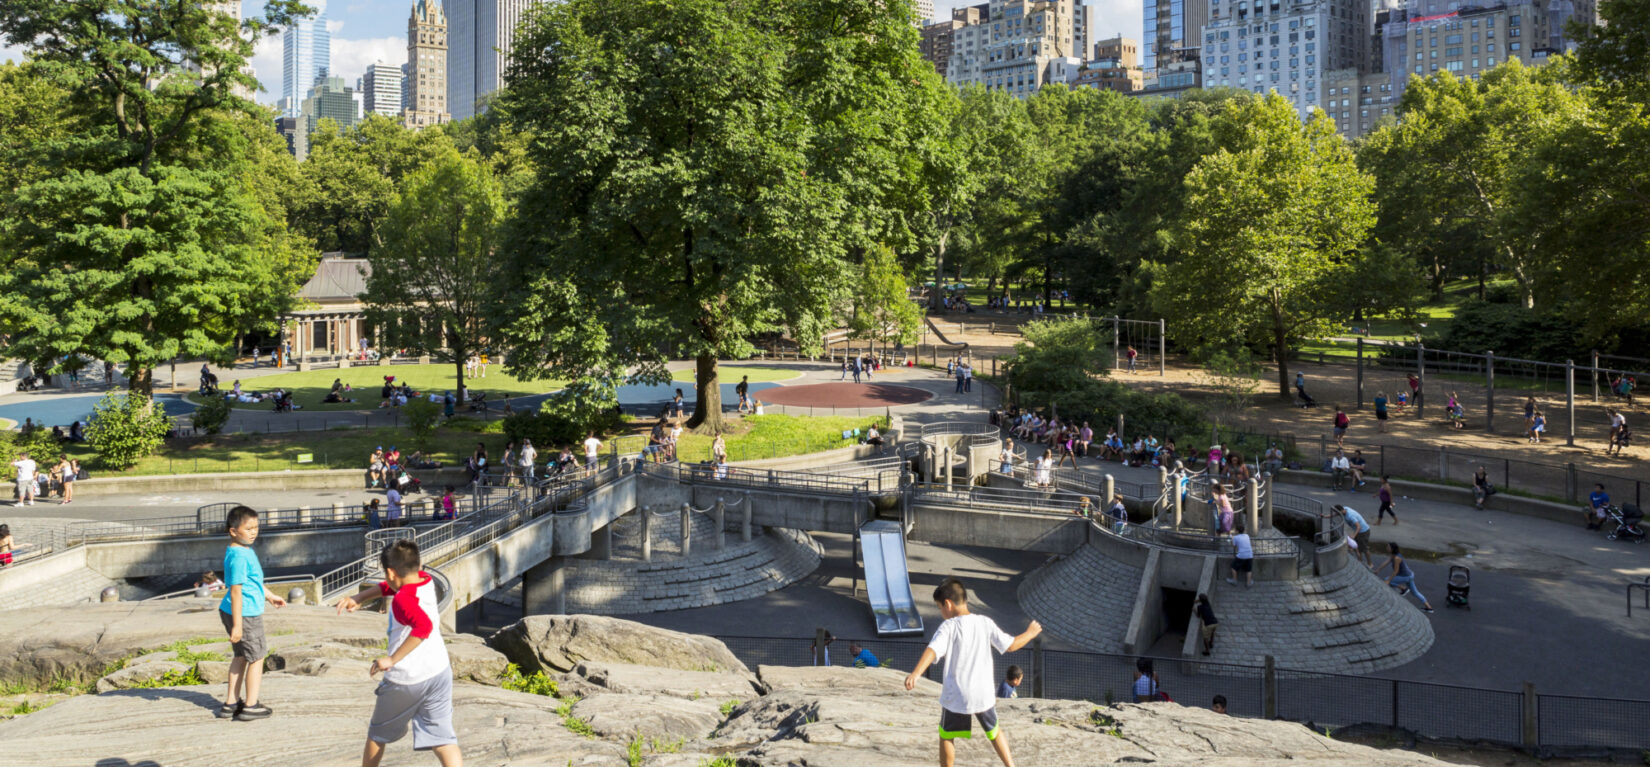 Children at play on the rocks at one end of the playground, with the skyline as a backdrop